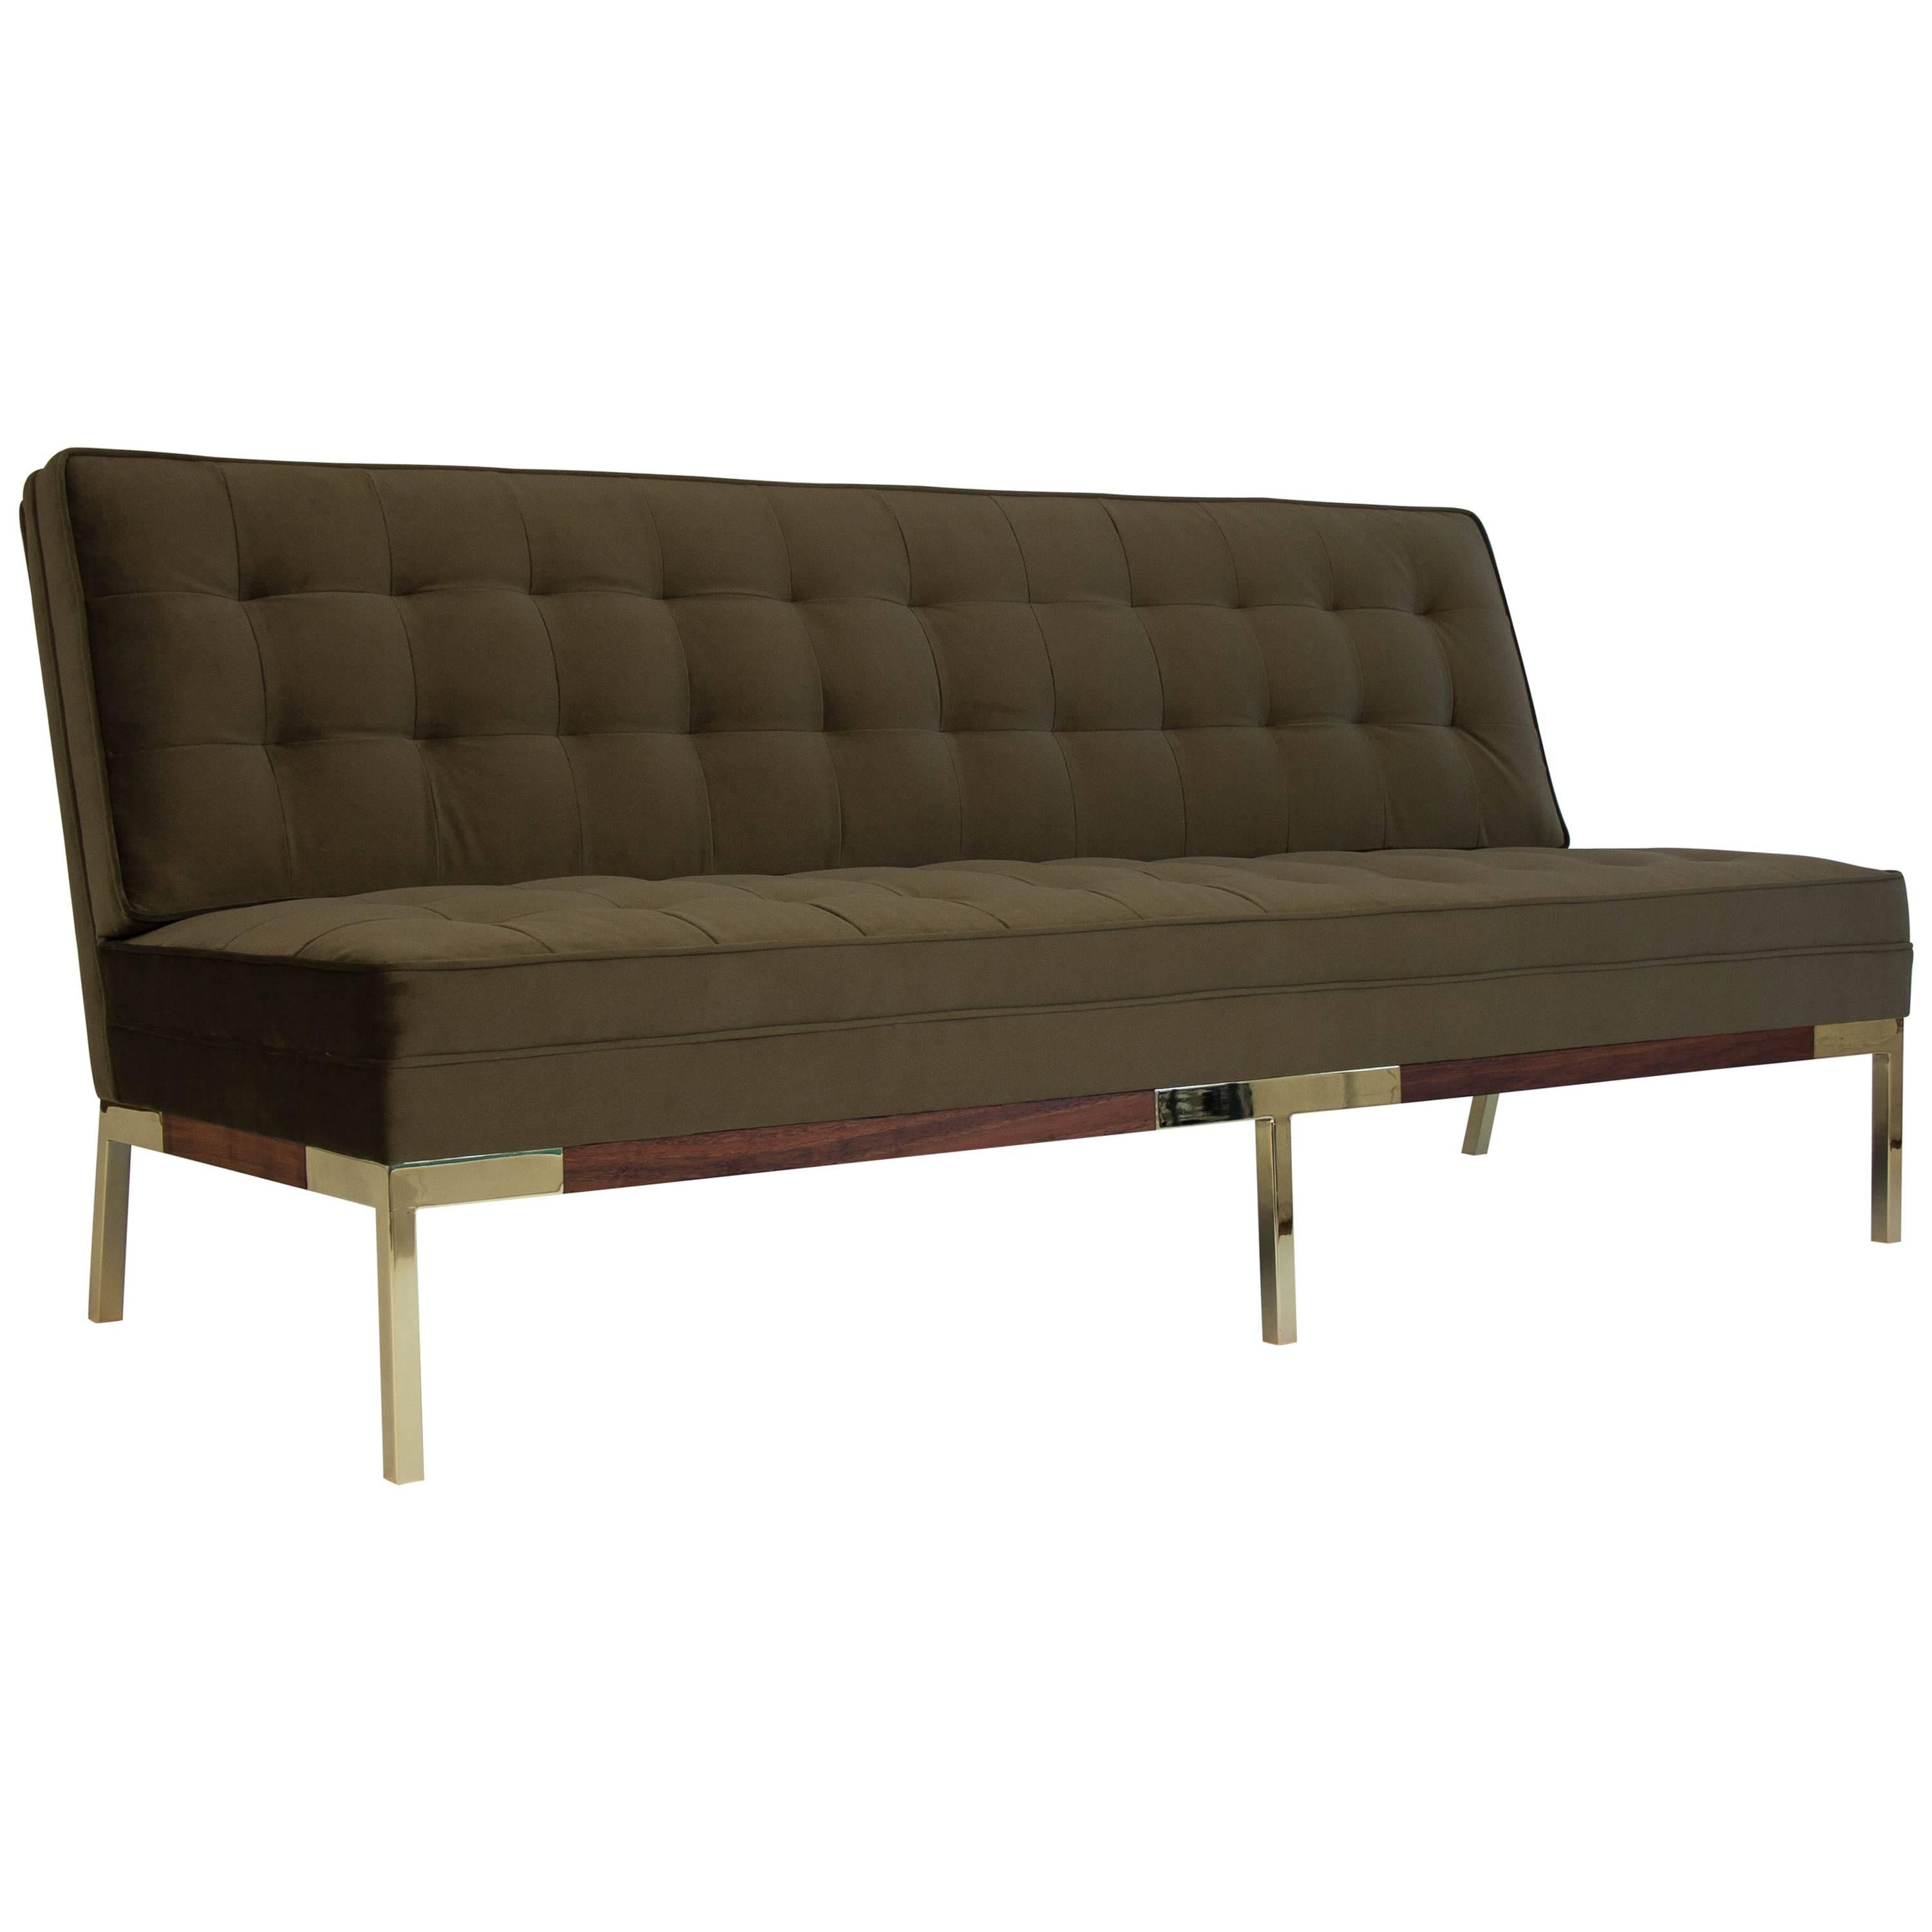 cotton velvet sofa valencia leather review simone 2 seater claret